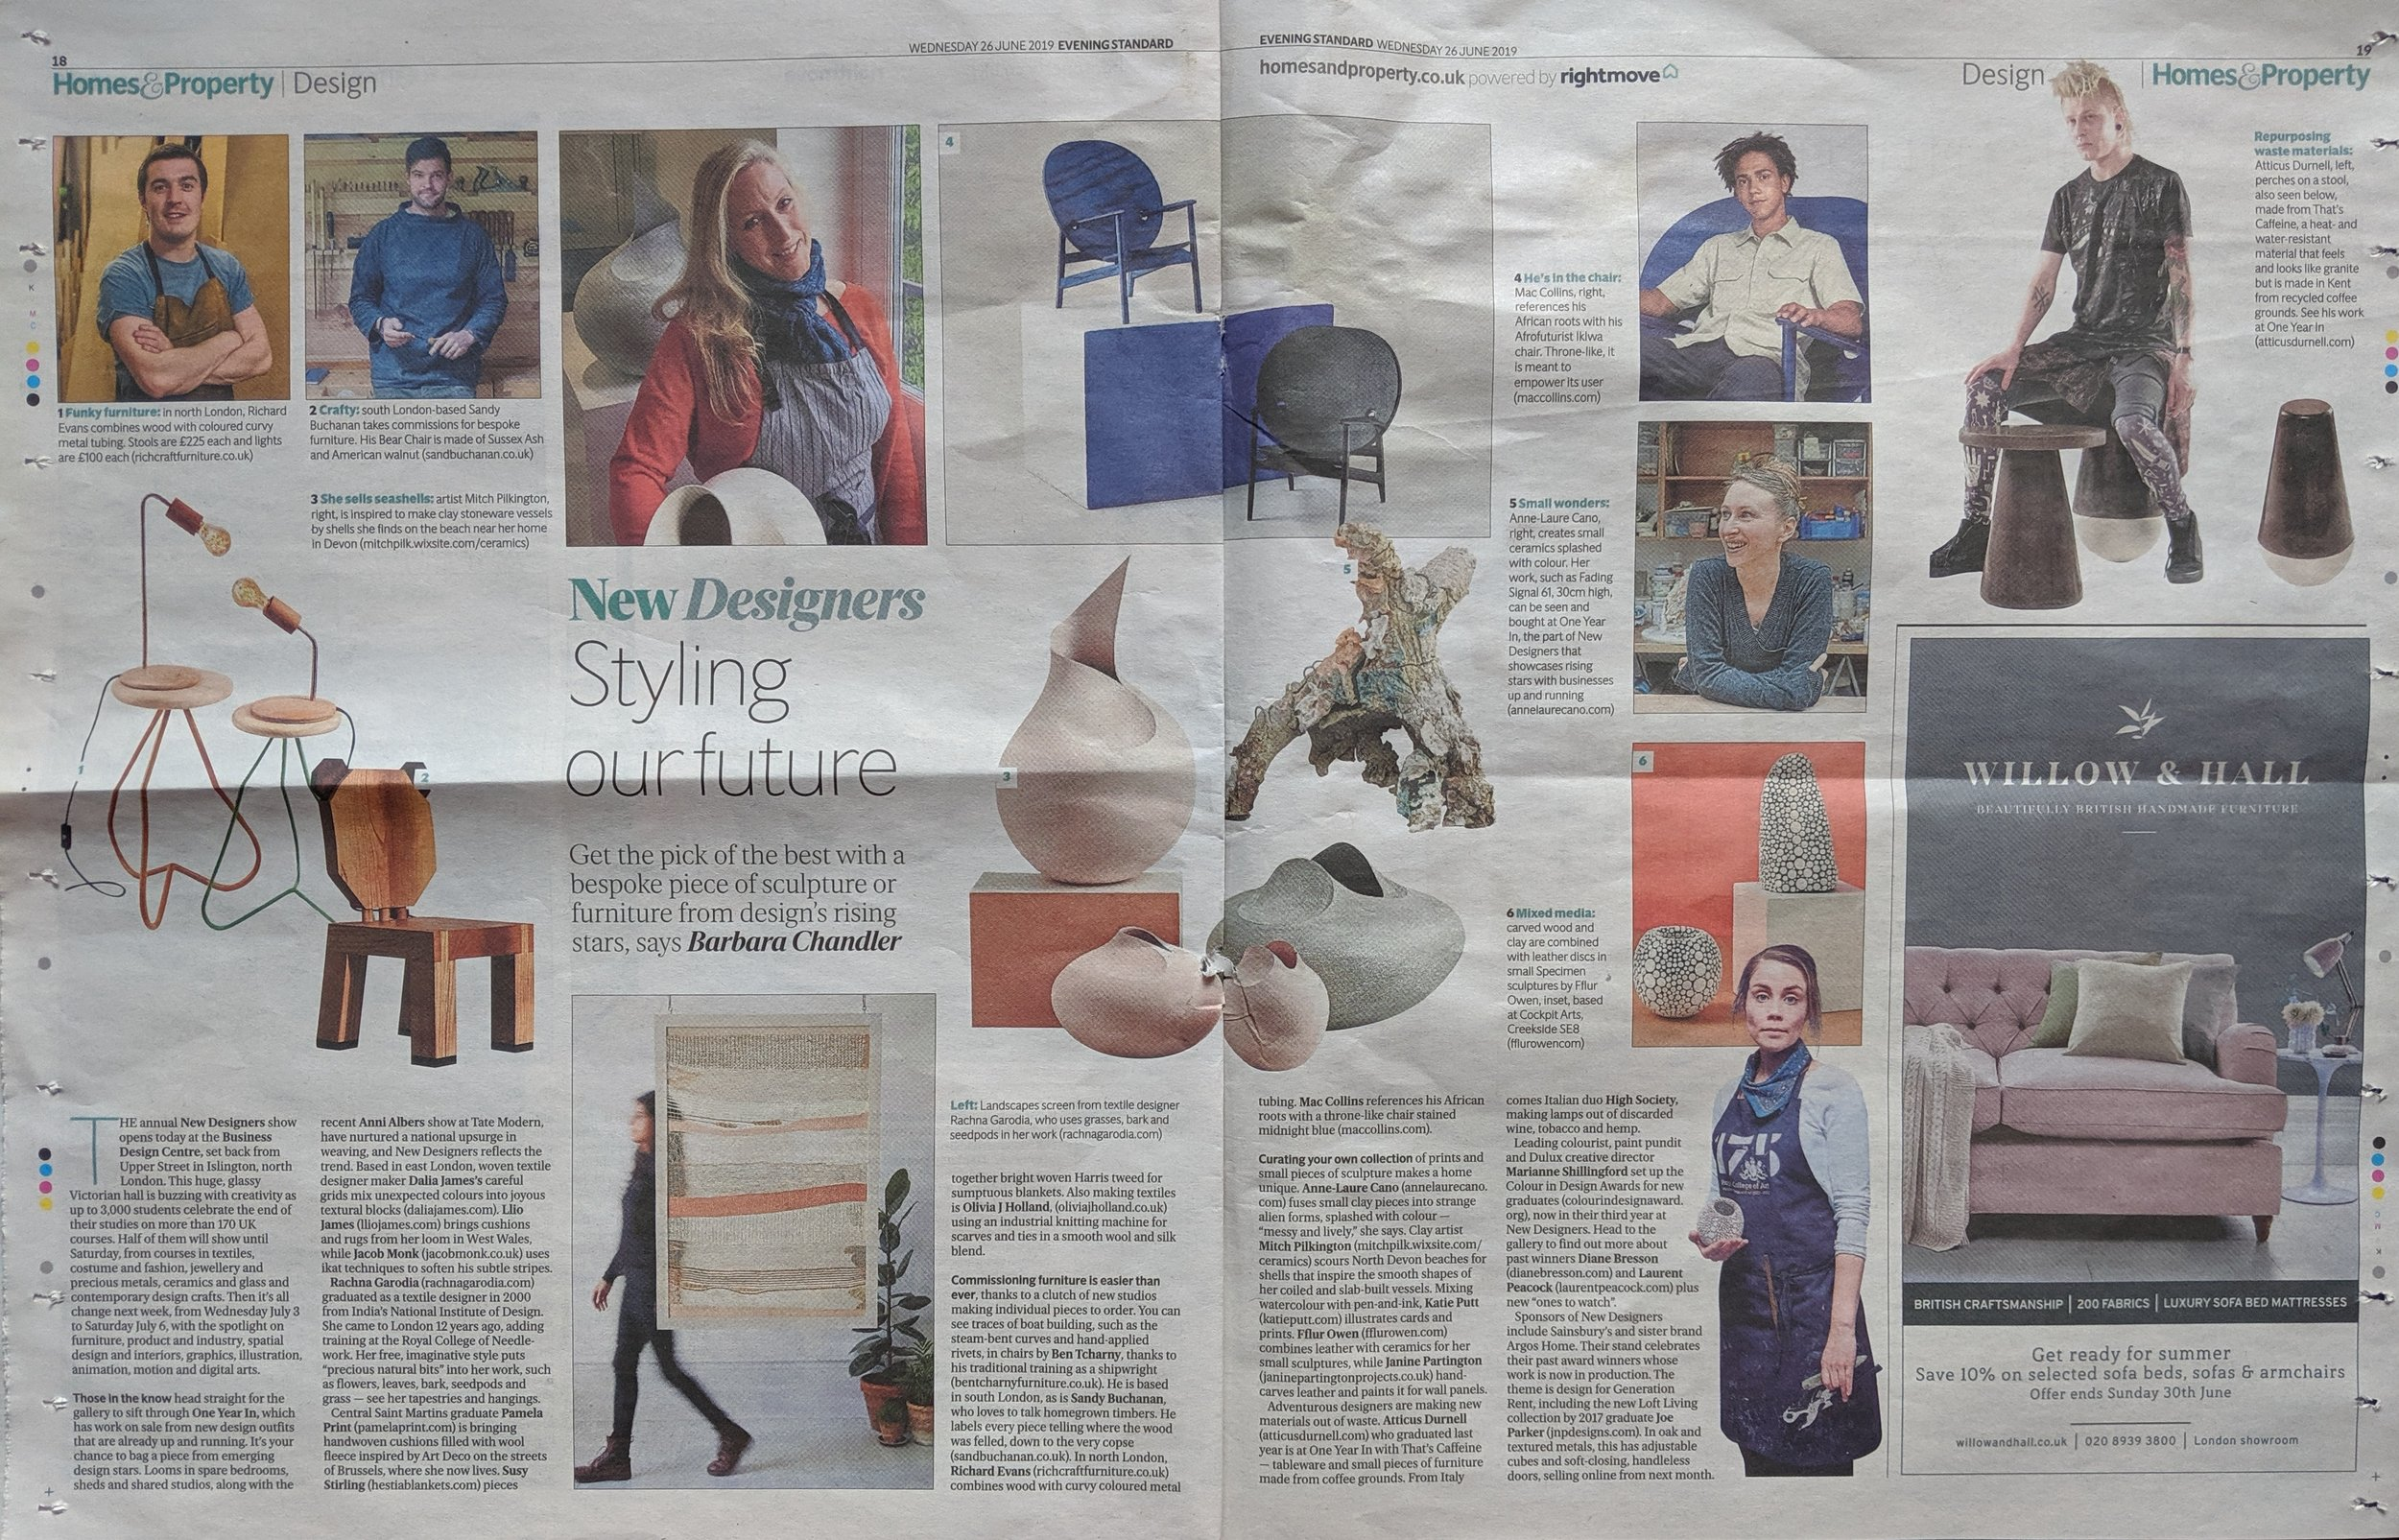 The Evening Standard 26.06.19 - Featured in an article for the Evening Standard Newspaper written by Barbara Chandler about New Designers 2019.